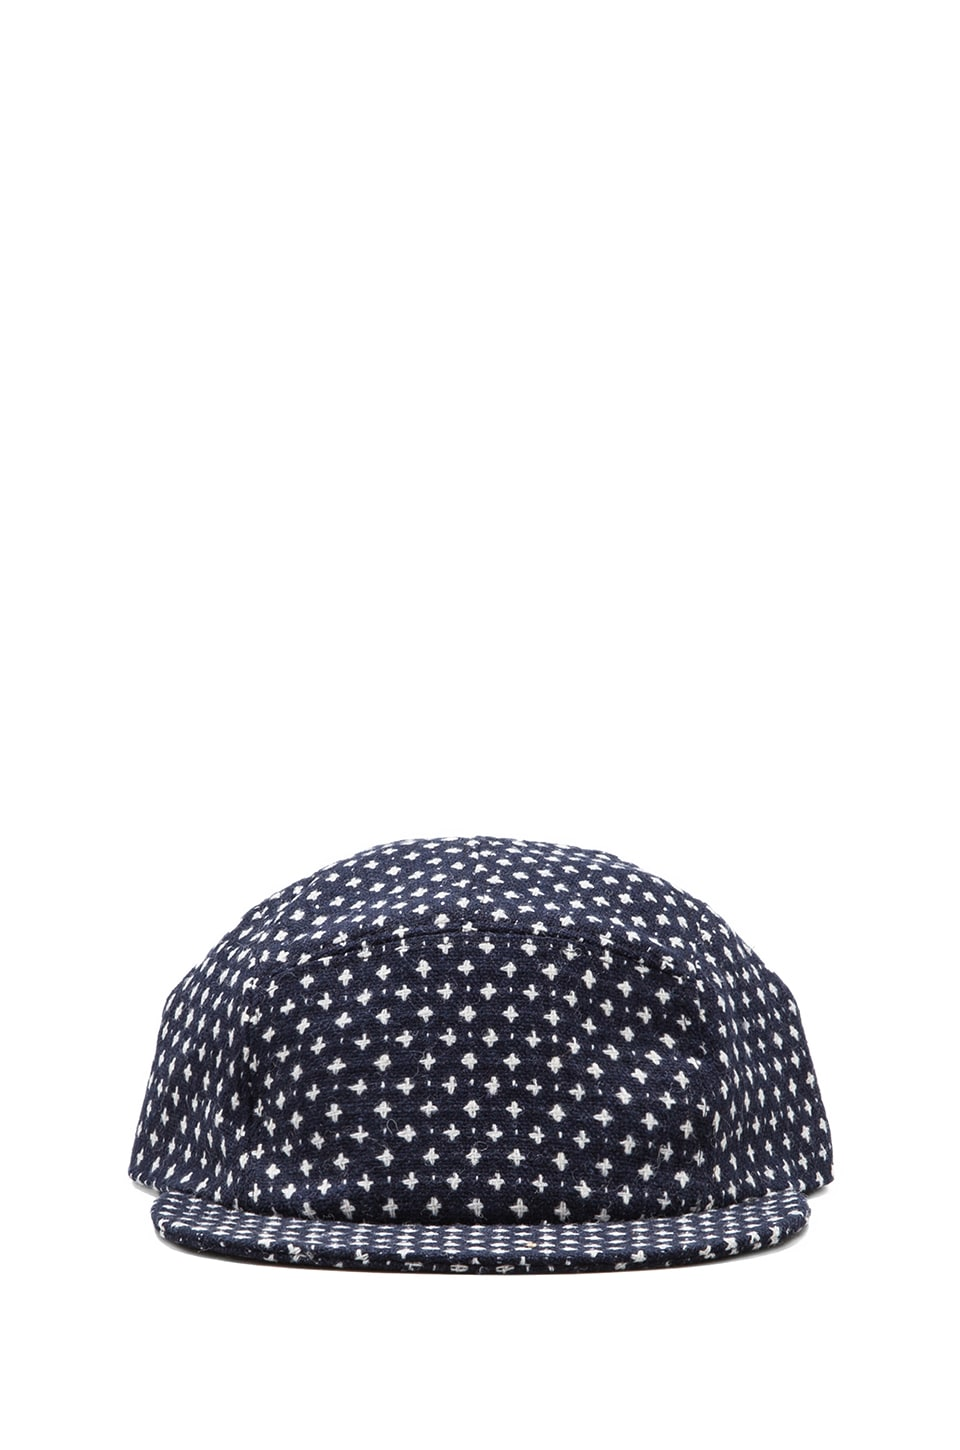 Brooklyn We Go Hard Larose Hat in Blue